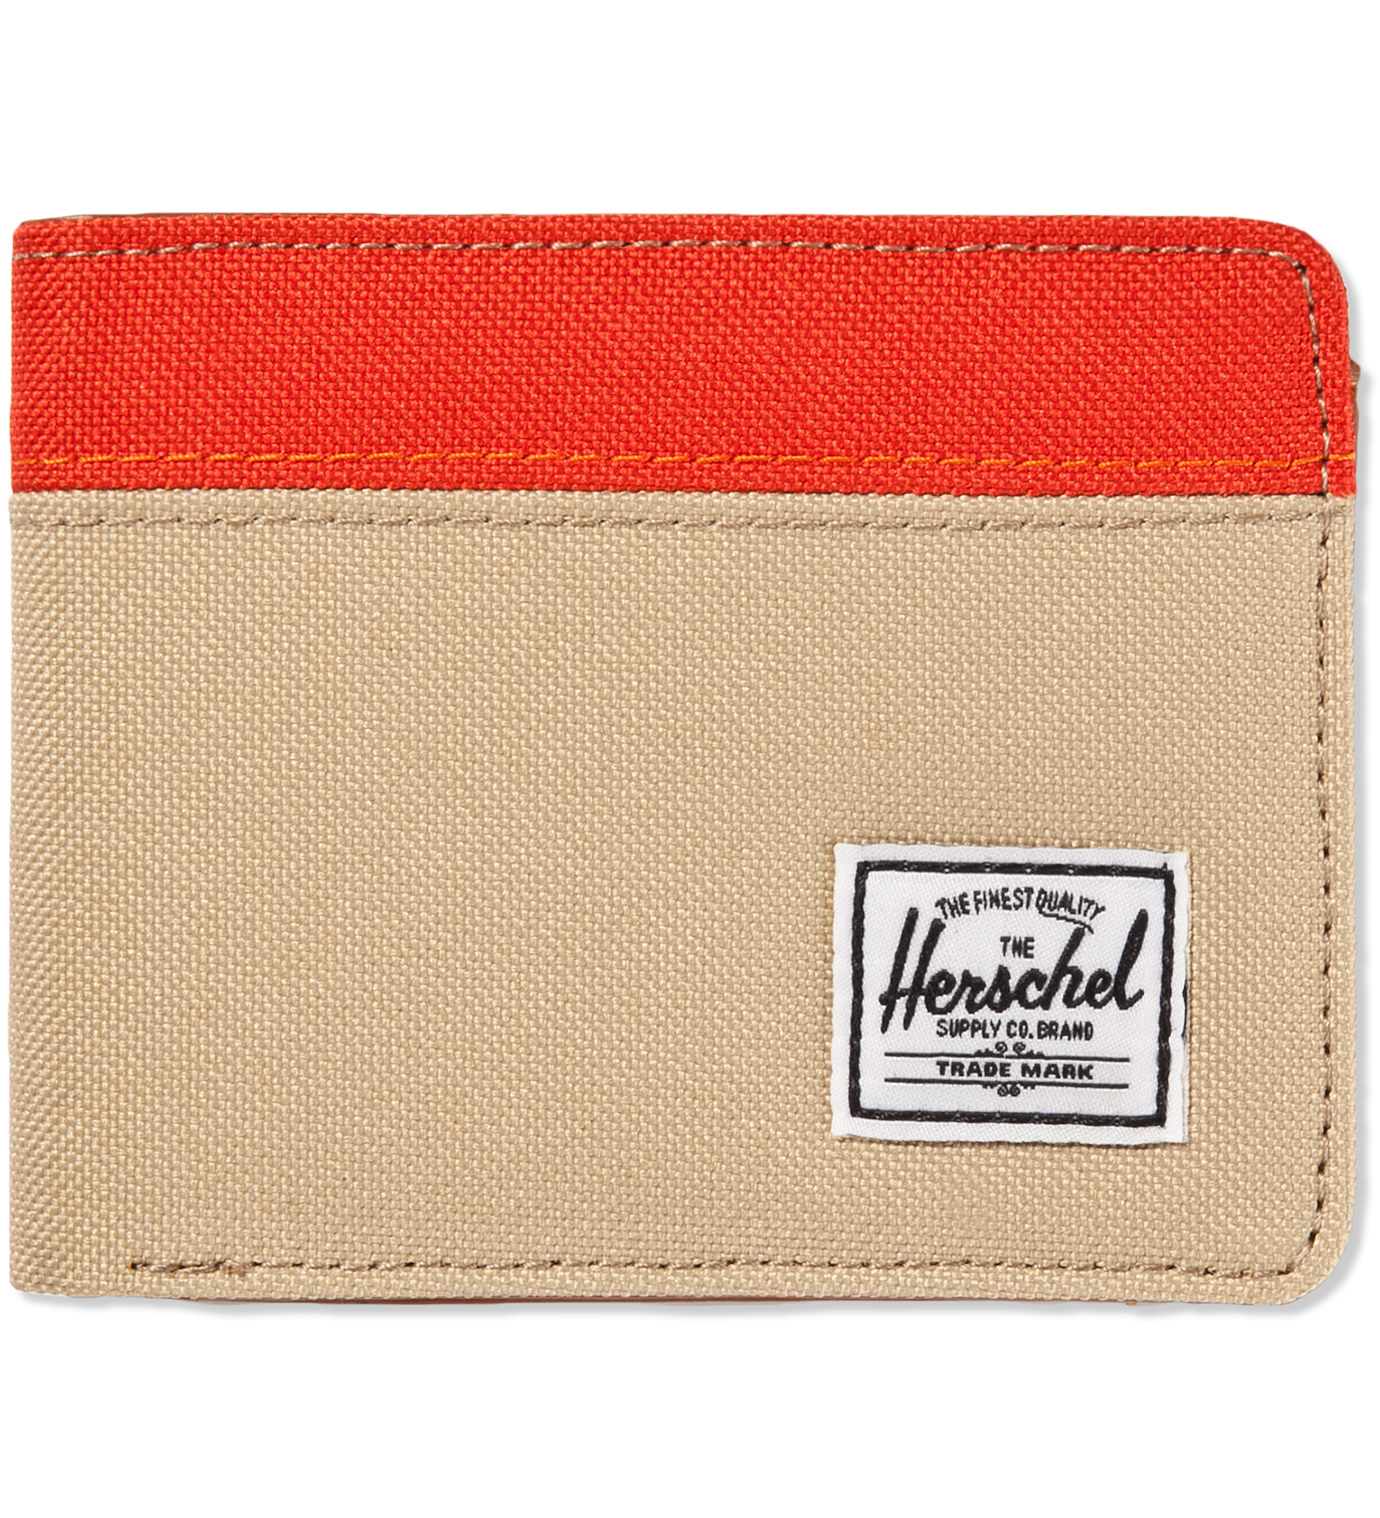 Herschel Supply Co. Khaki/Camper Orange Hank Wallet